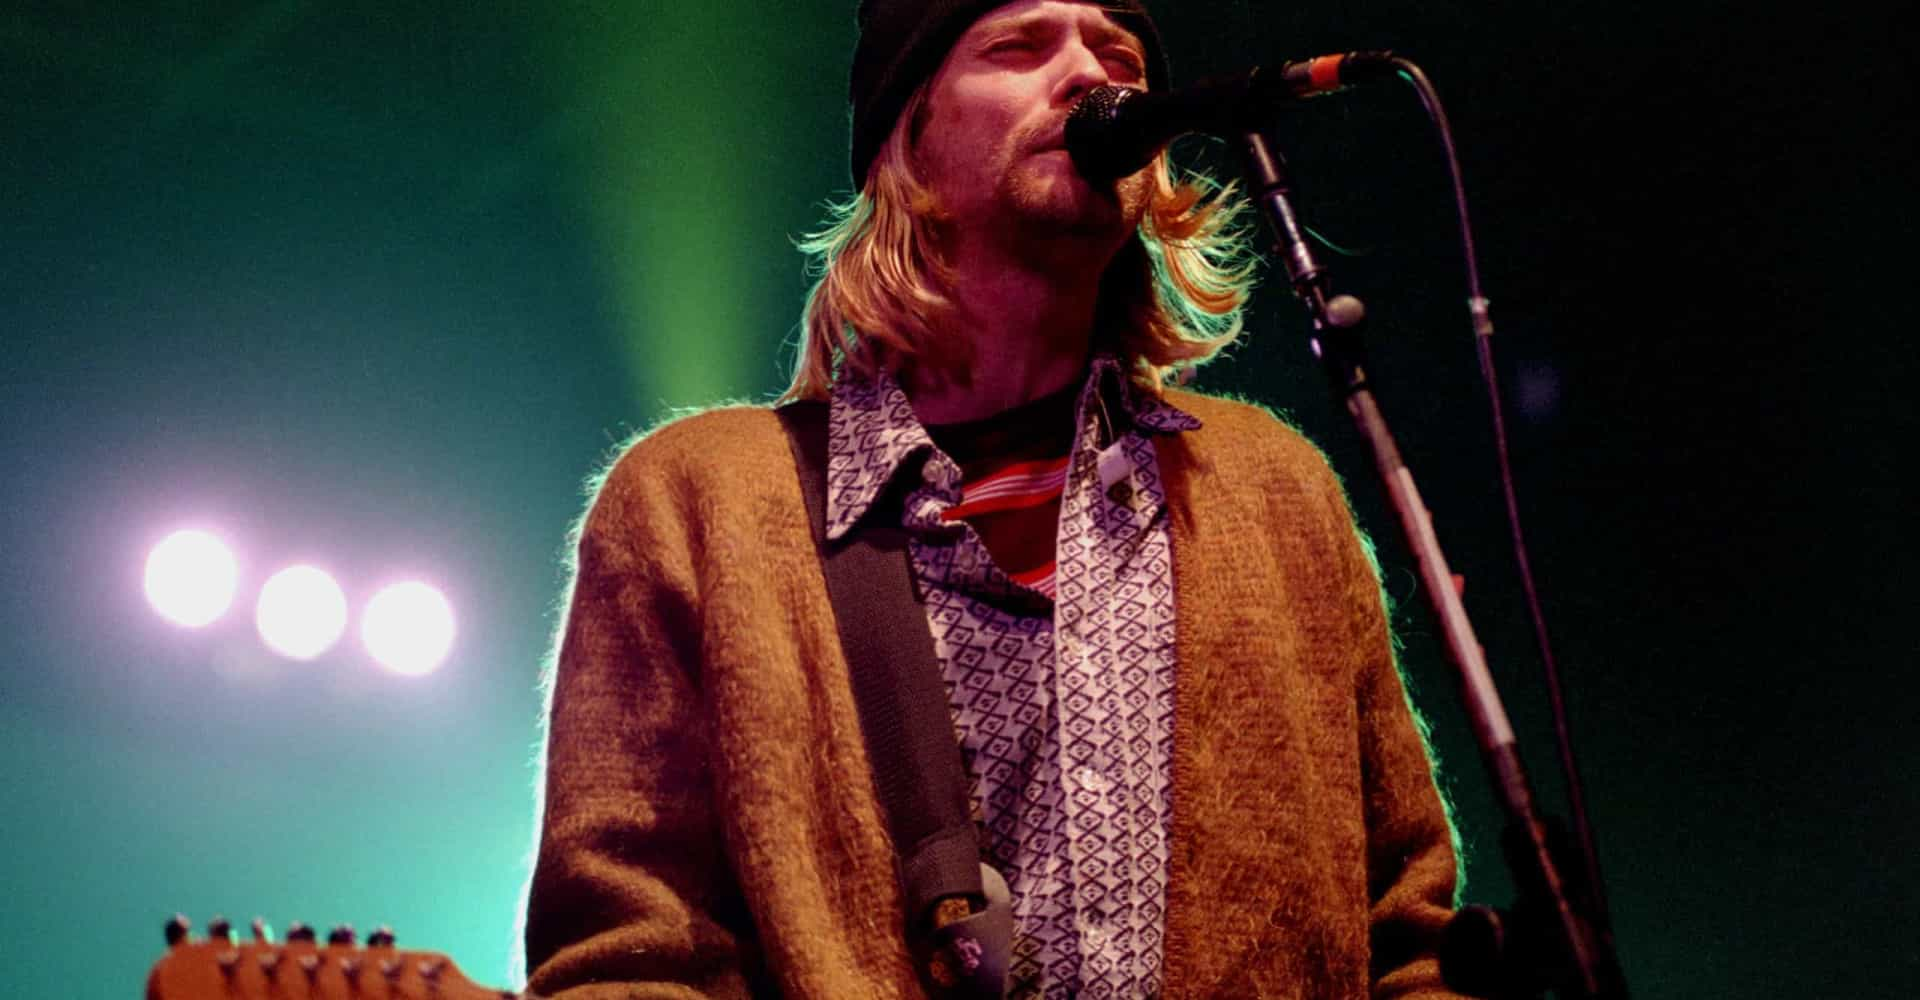 Kurt Cobain's favorite albums of all time